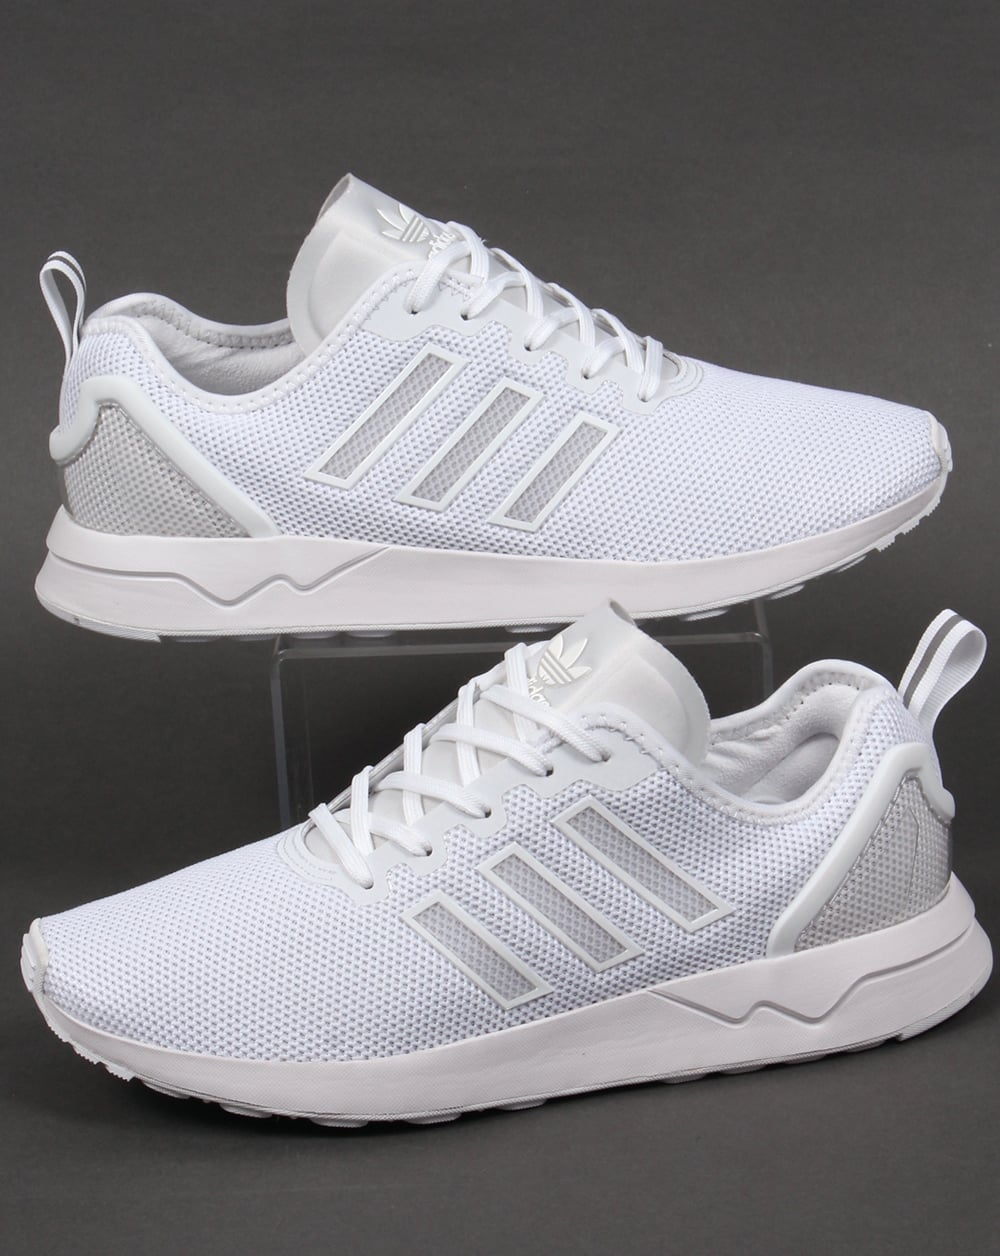 5bc259c8d80 adidas Trainers Adidas ZX Flux ADV Trainers White White